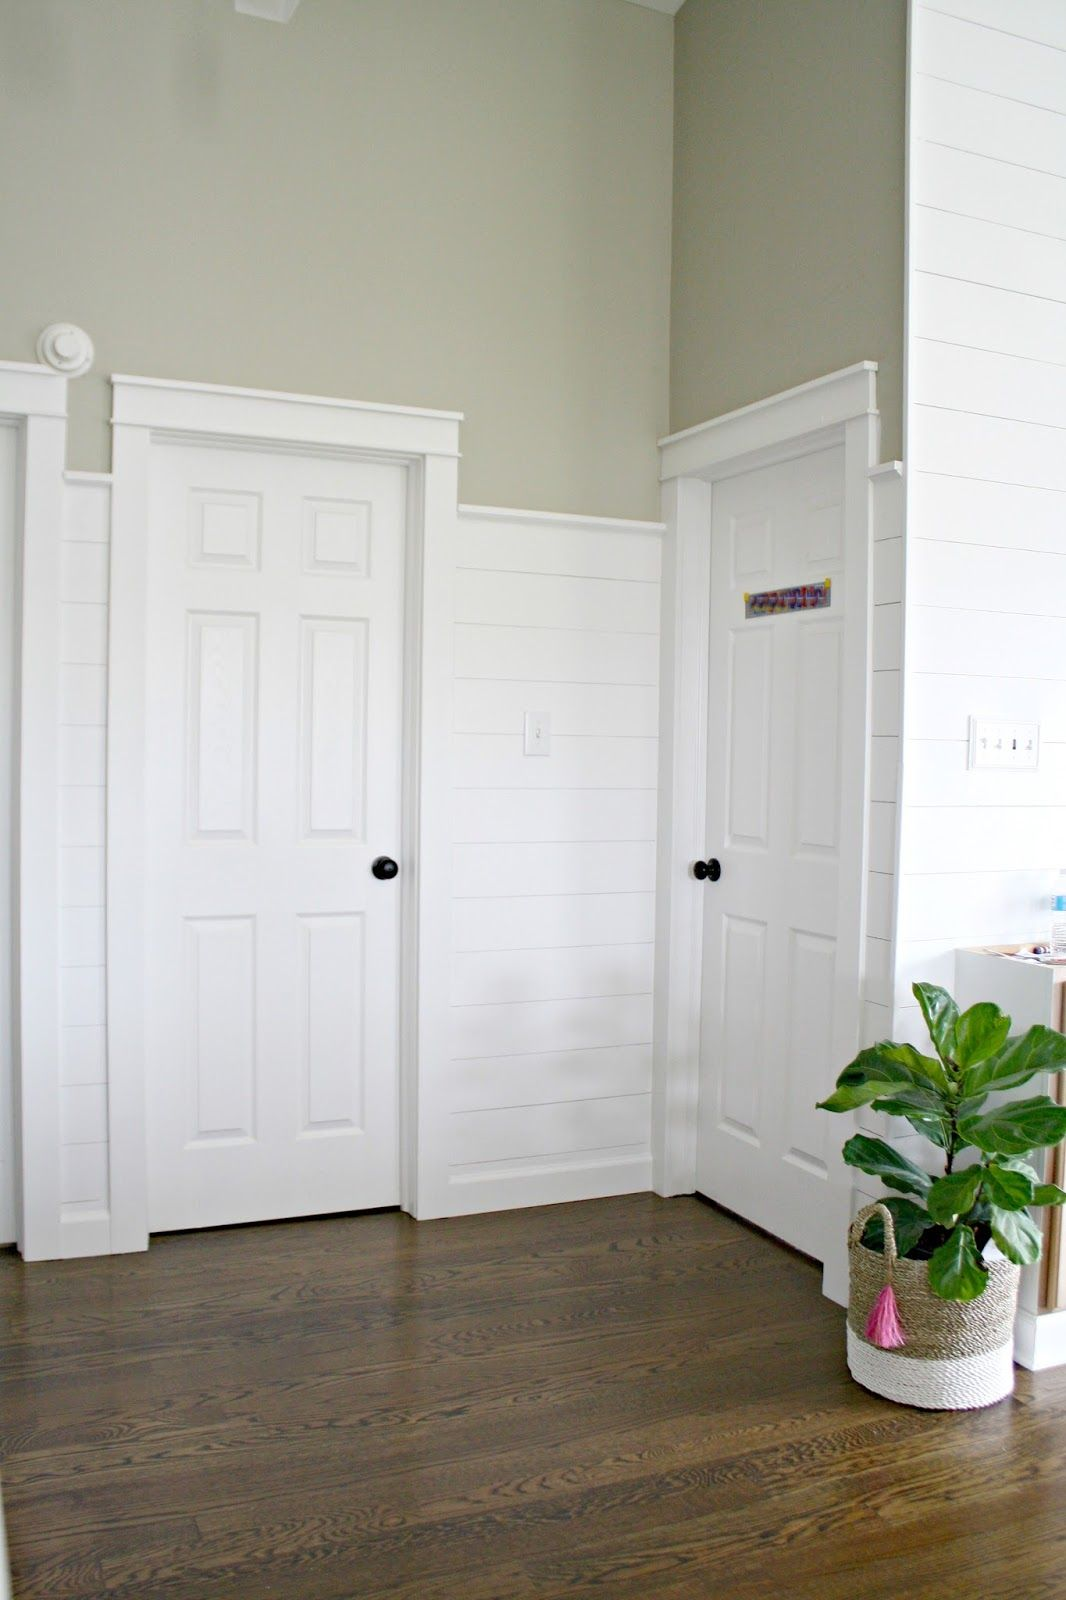 finished shiplap walls and farmhouse door trim in the loft on wall trim id=33996